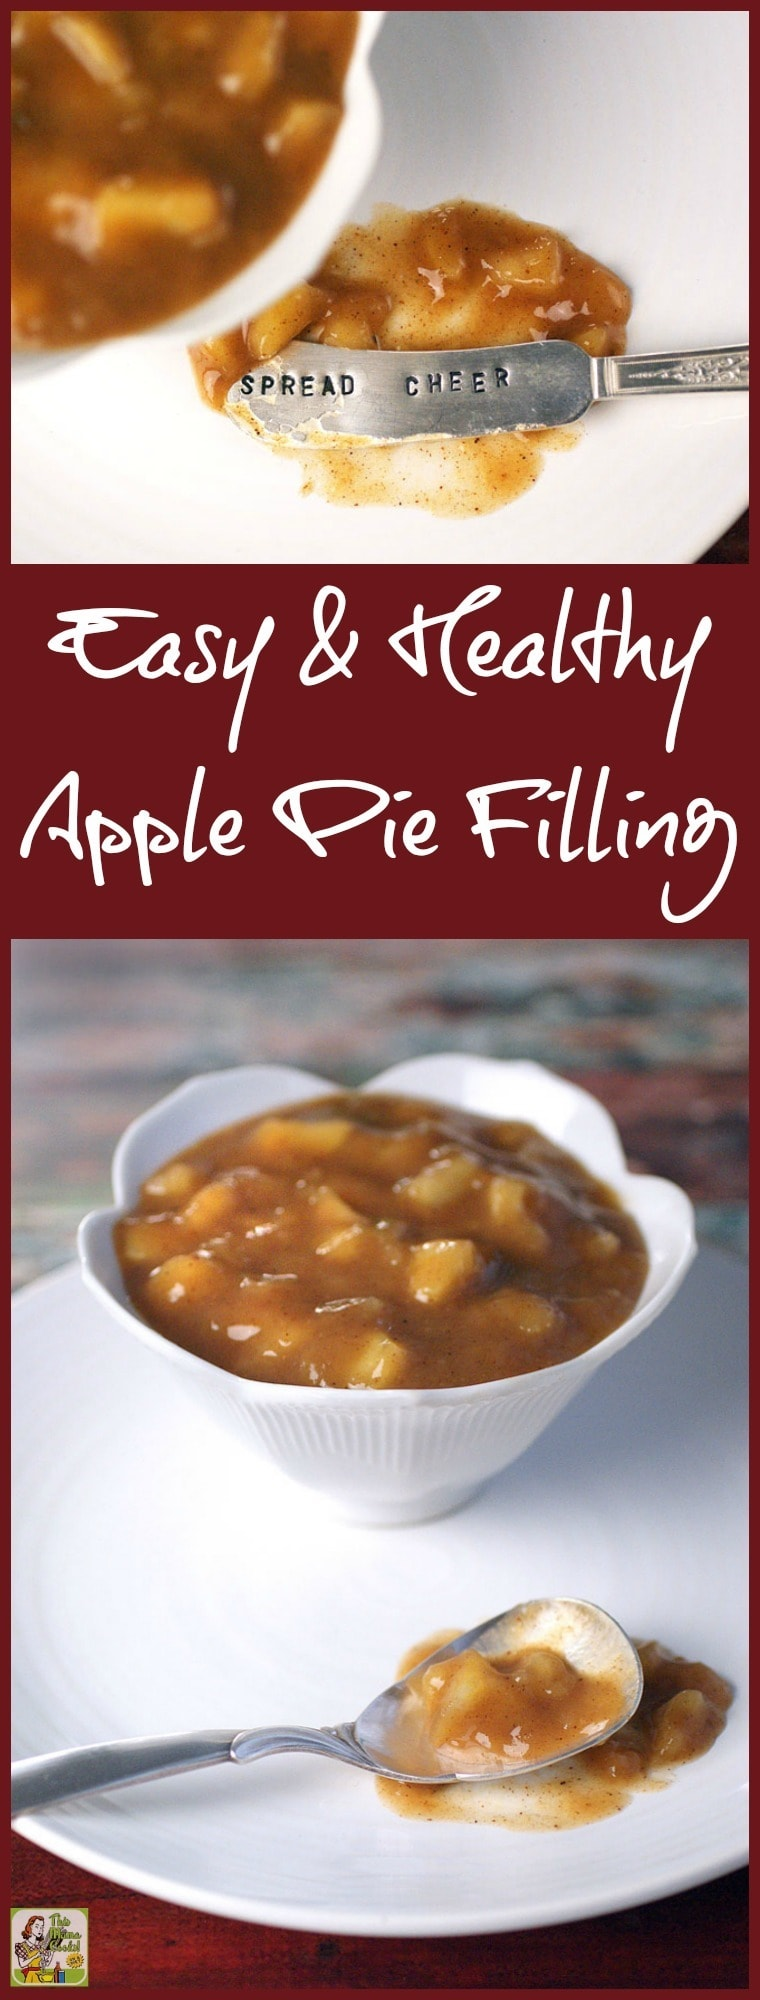 How to make an Easy & Healthy Apple Pie Filling for all your baking needs. The best apple pie filling recipe is easier to make than you think! Click to get this gluten-free recipe. Double or triple a batch and freeze to use in all sorts of apple pie dessert and baking recipes. #recipes #easy #recipeoftheday #glutenfree #easyrecipe #easyrecipes #glutenfreerecipes #baking #apples #desserts #dessertrecipes #dessertideas